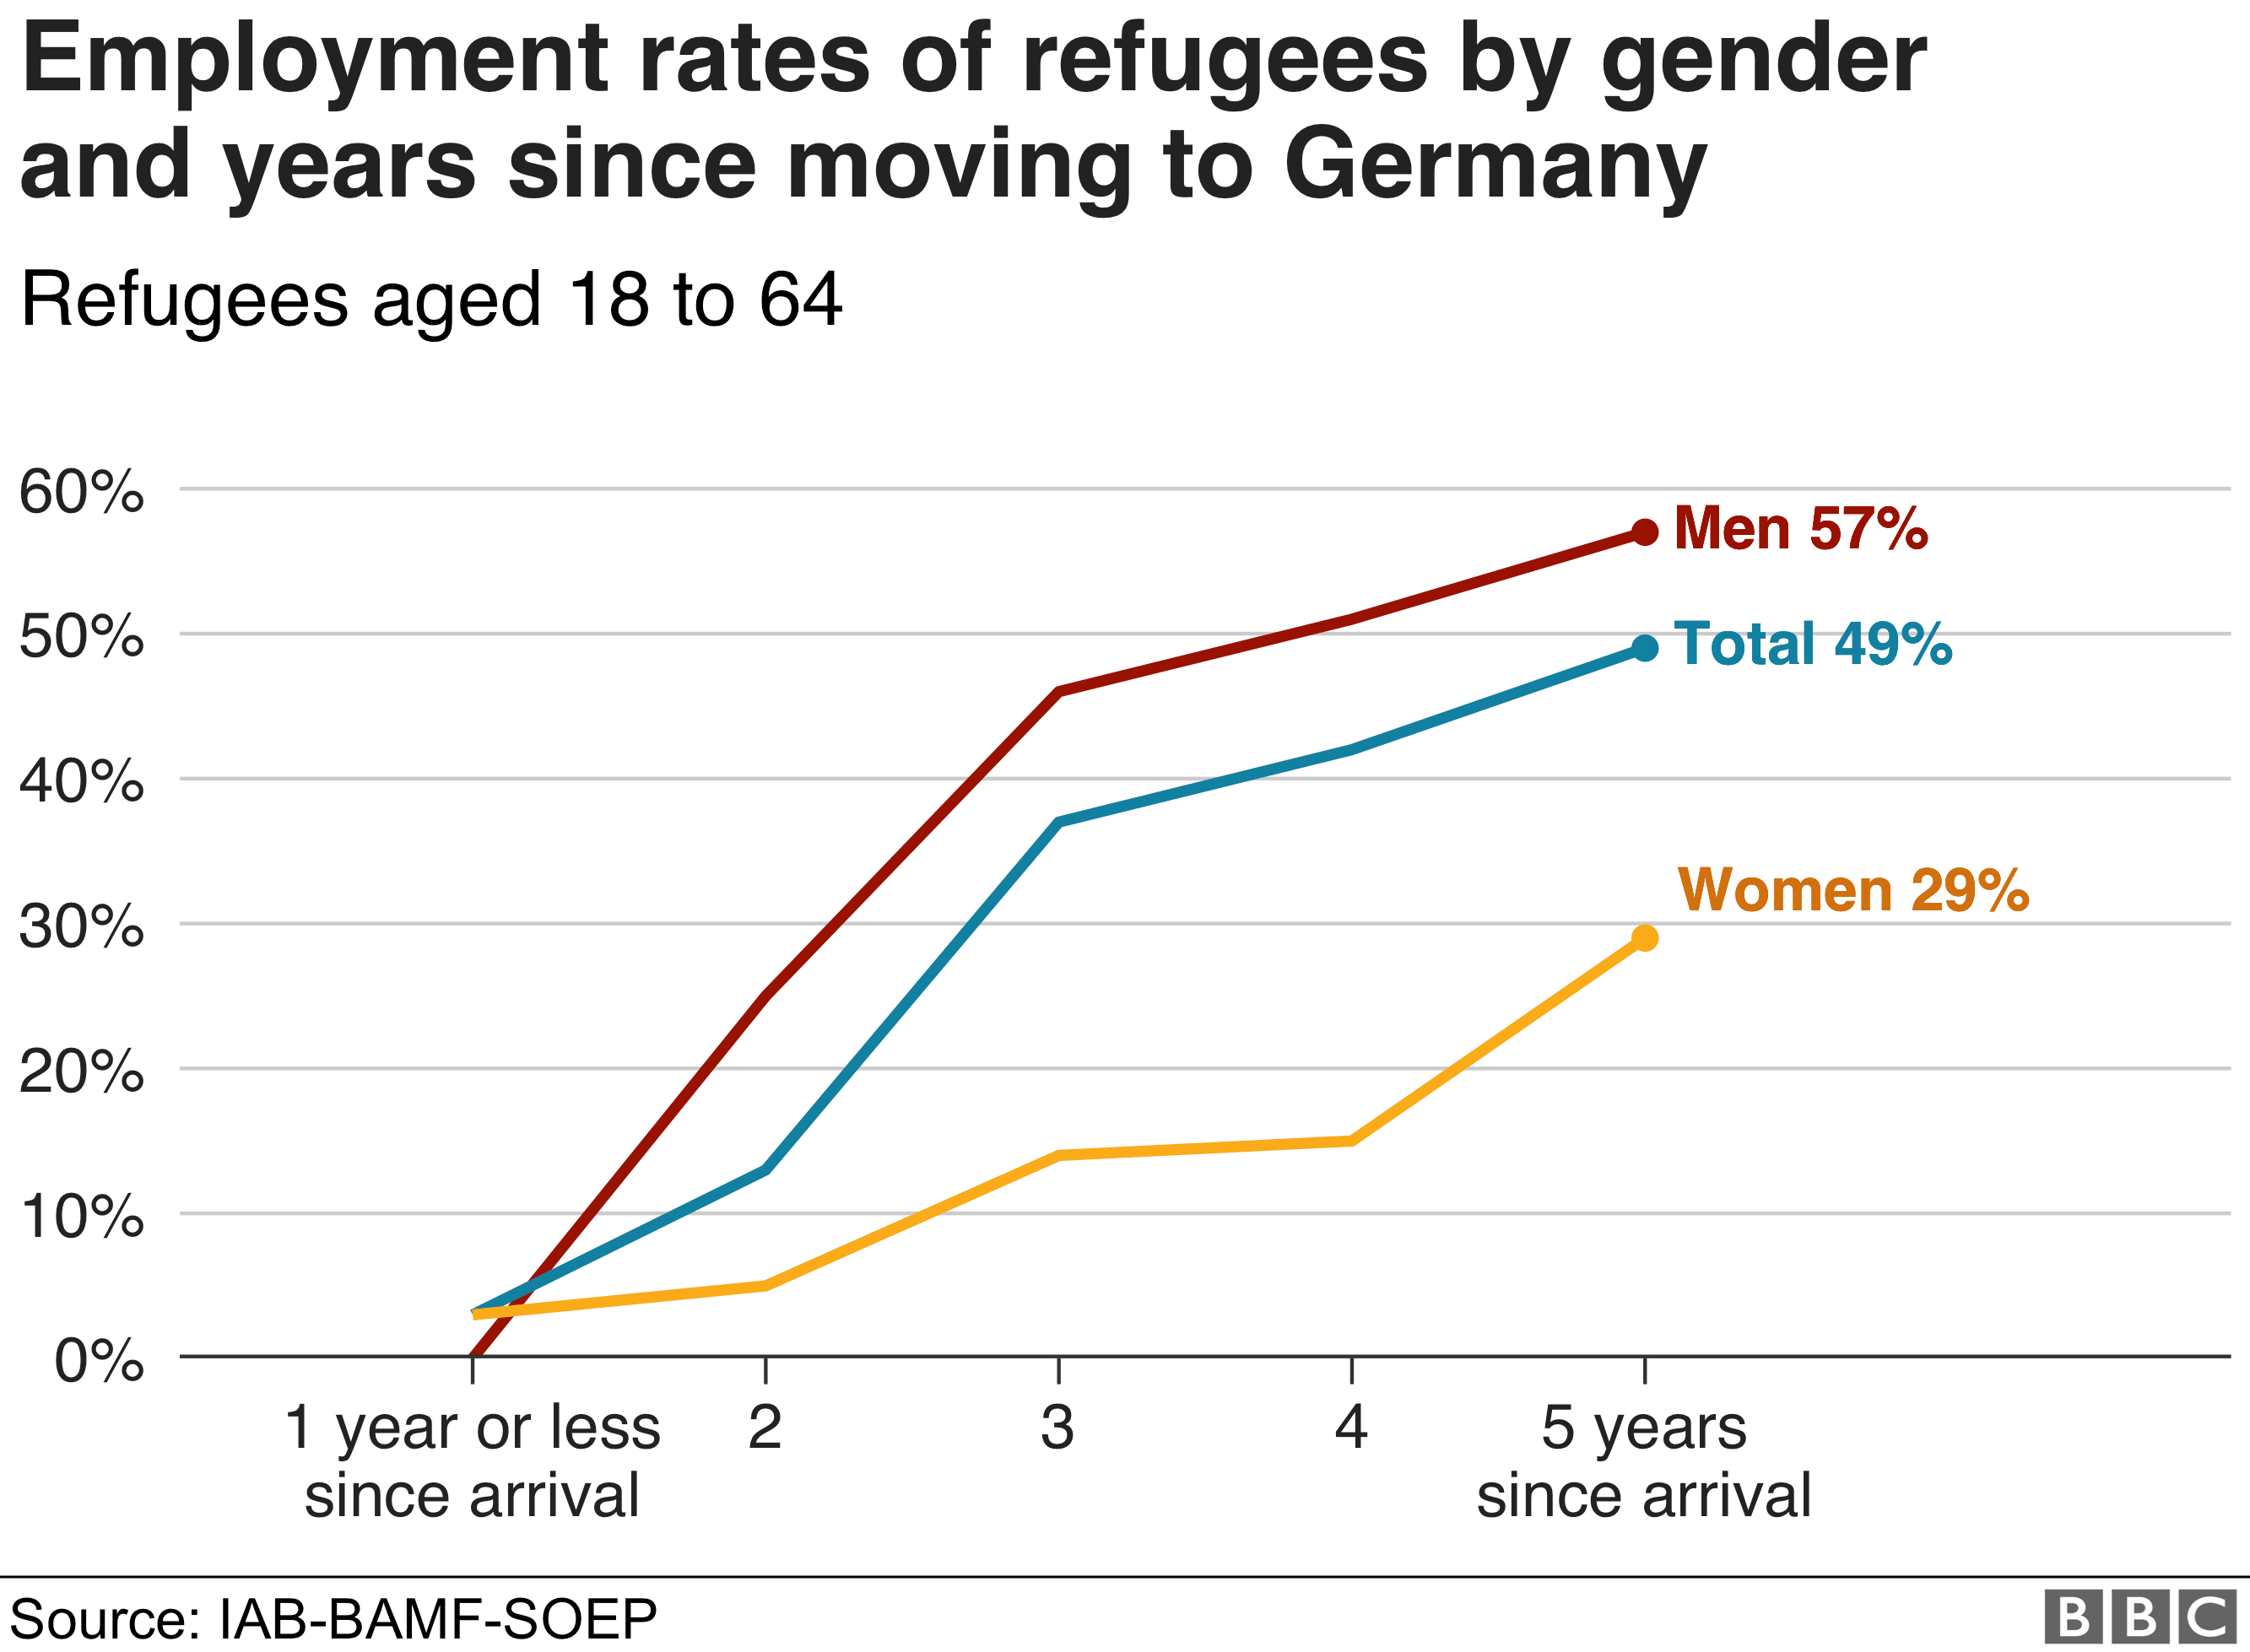 Chart showing employment rates of refugees by gender and years since moving to Germany